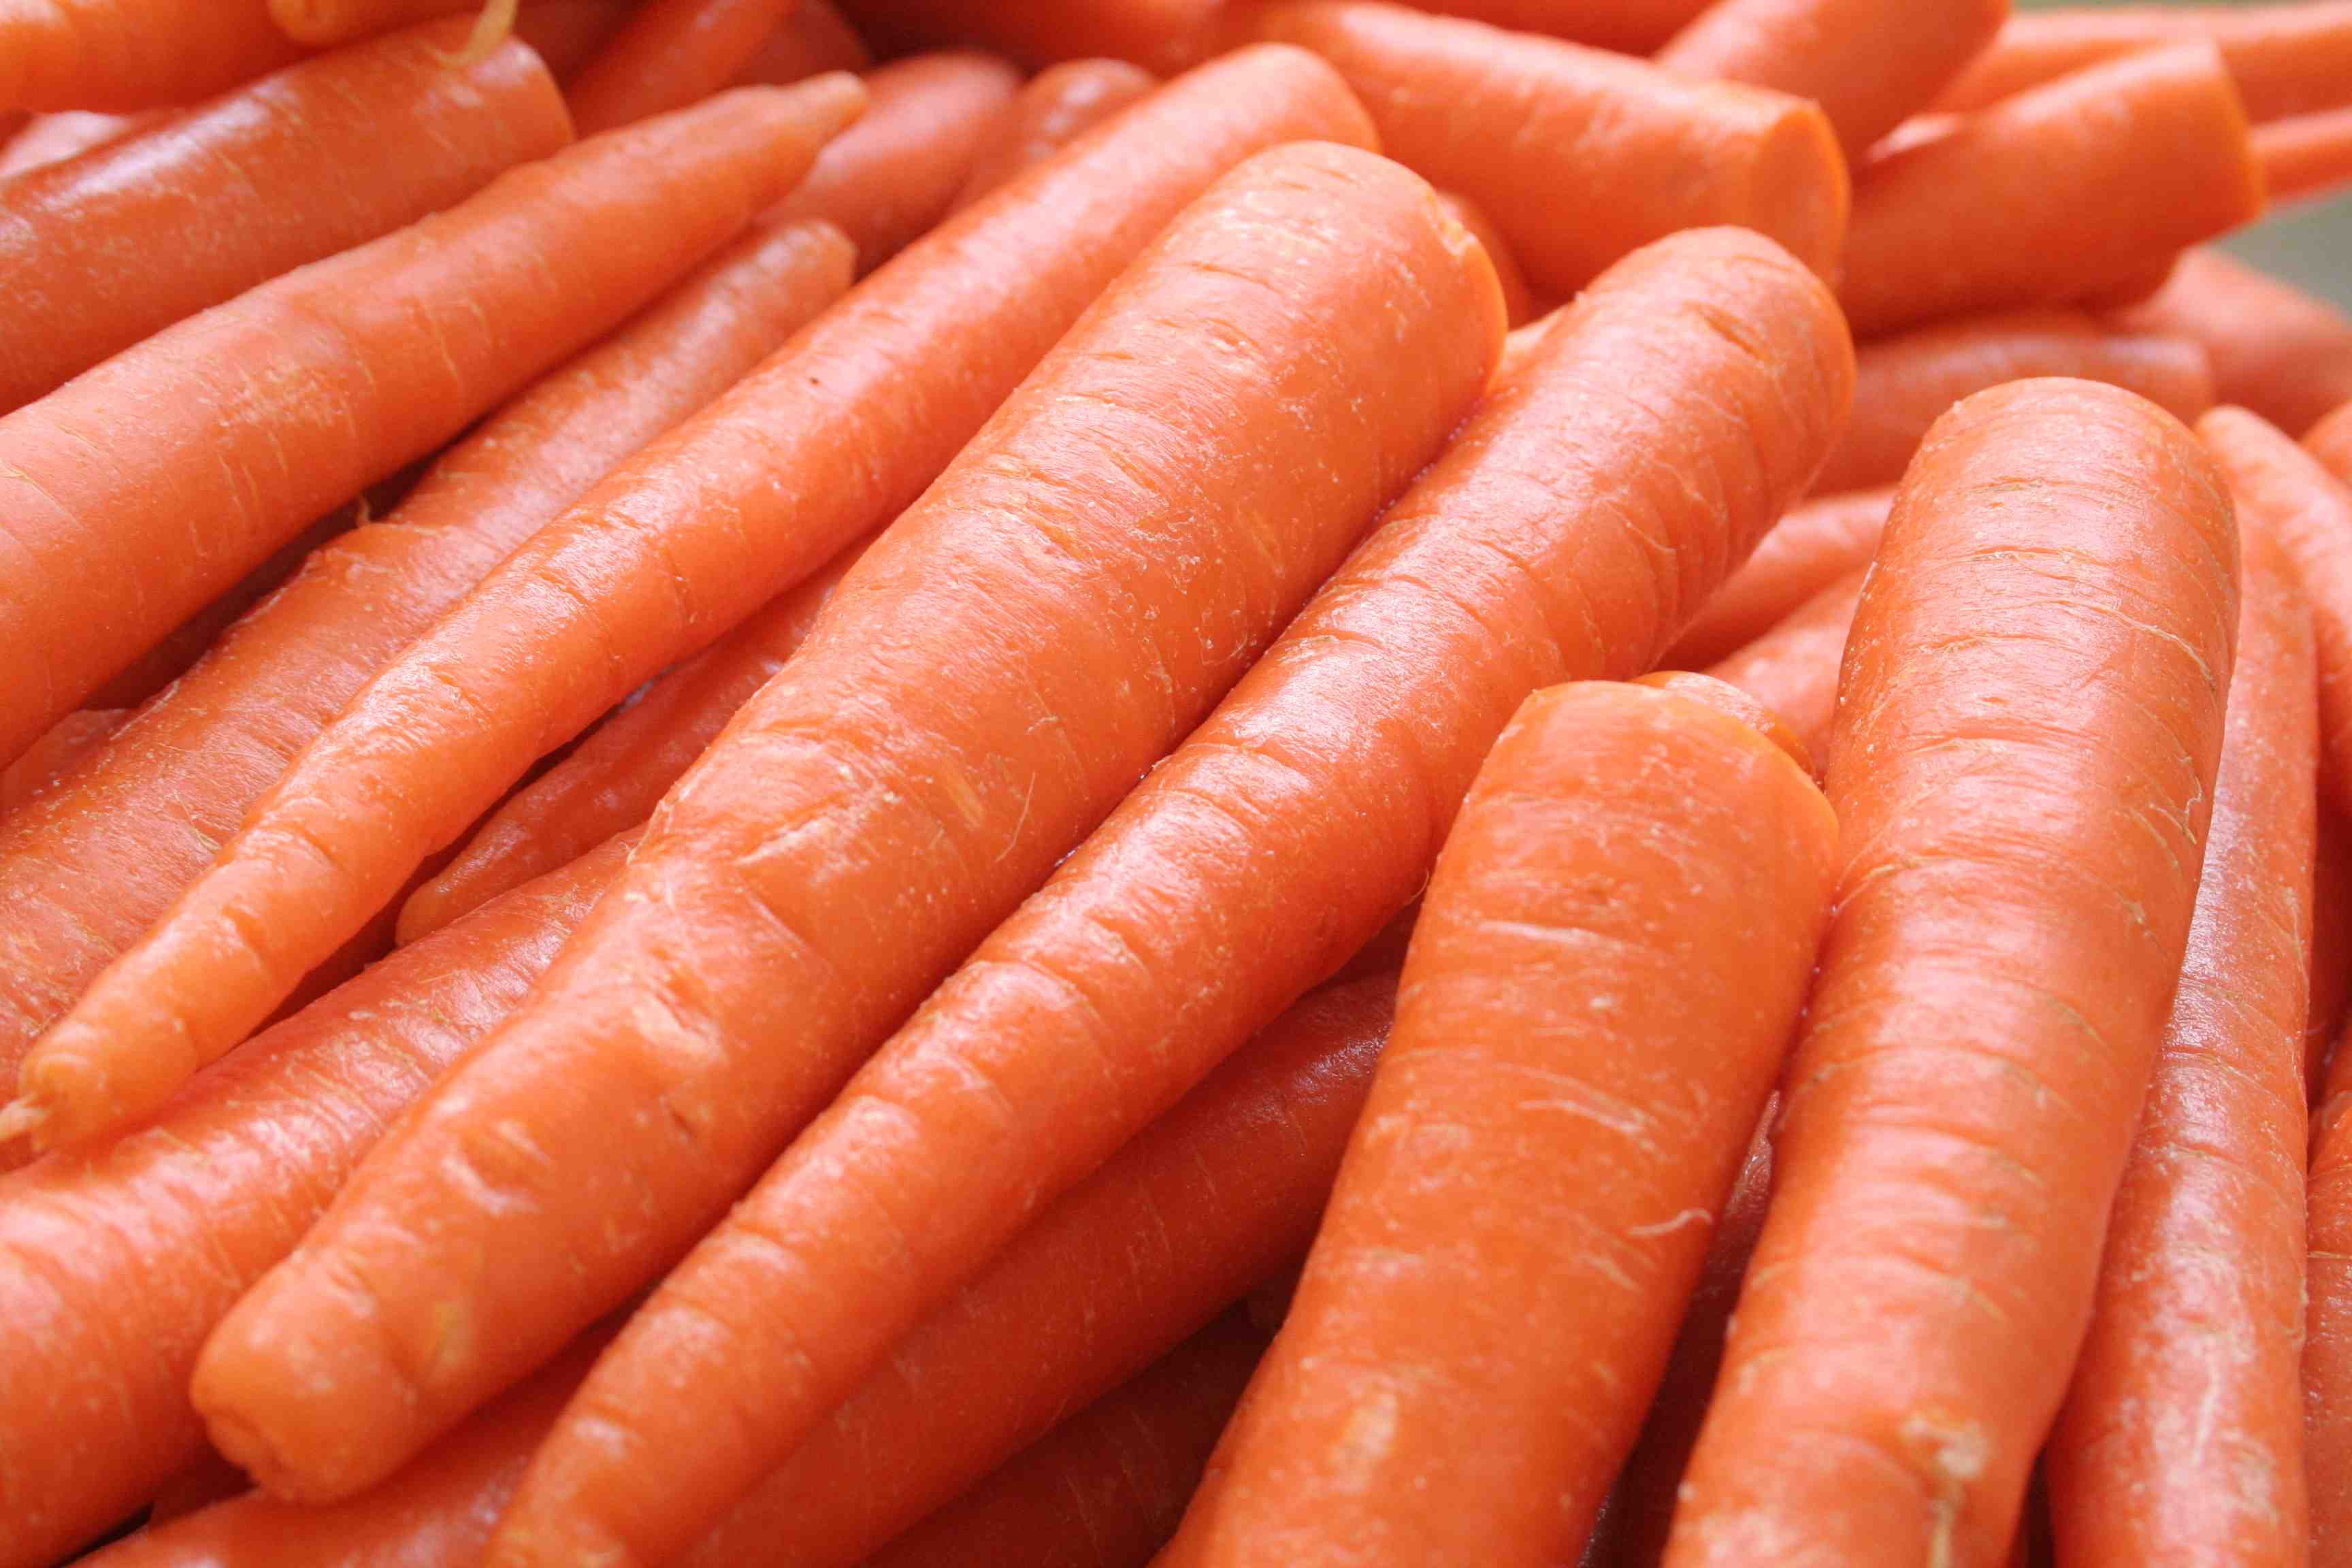 Carrot photos